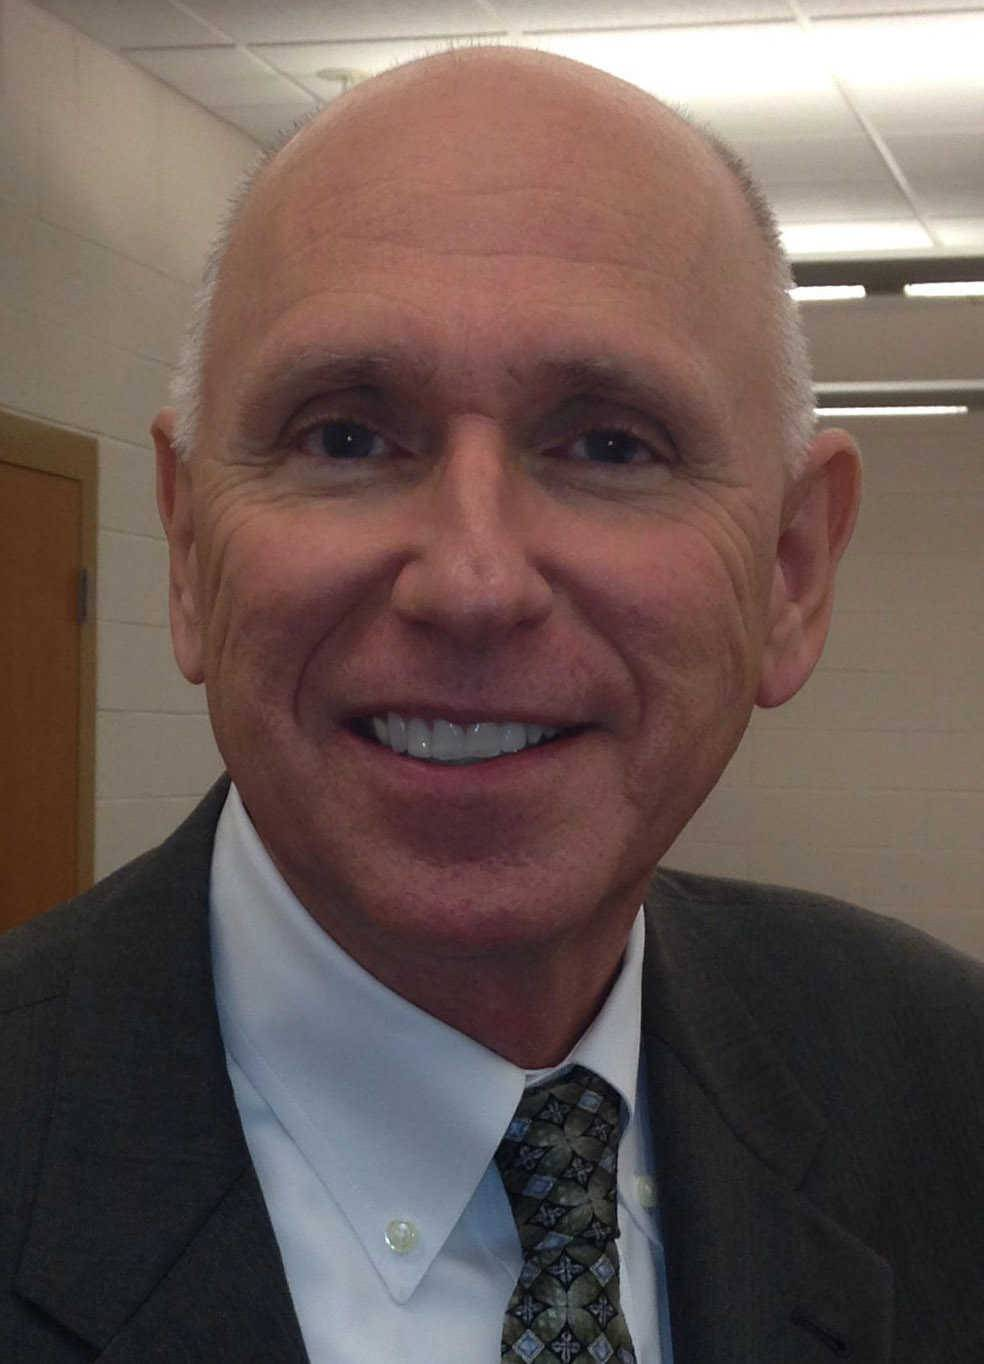 Kaneland interim superintendent hired Monday quits